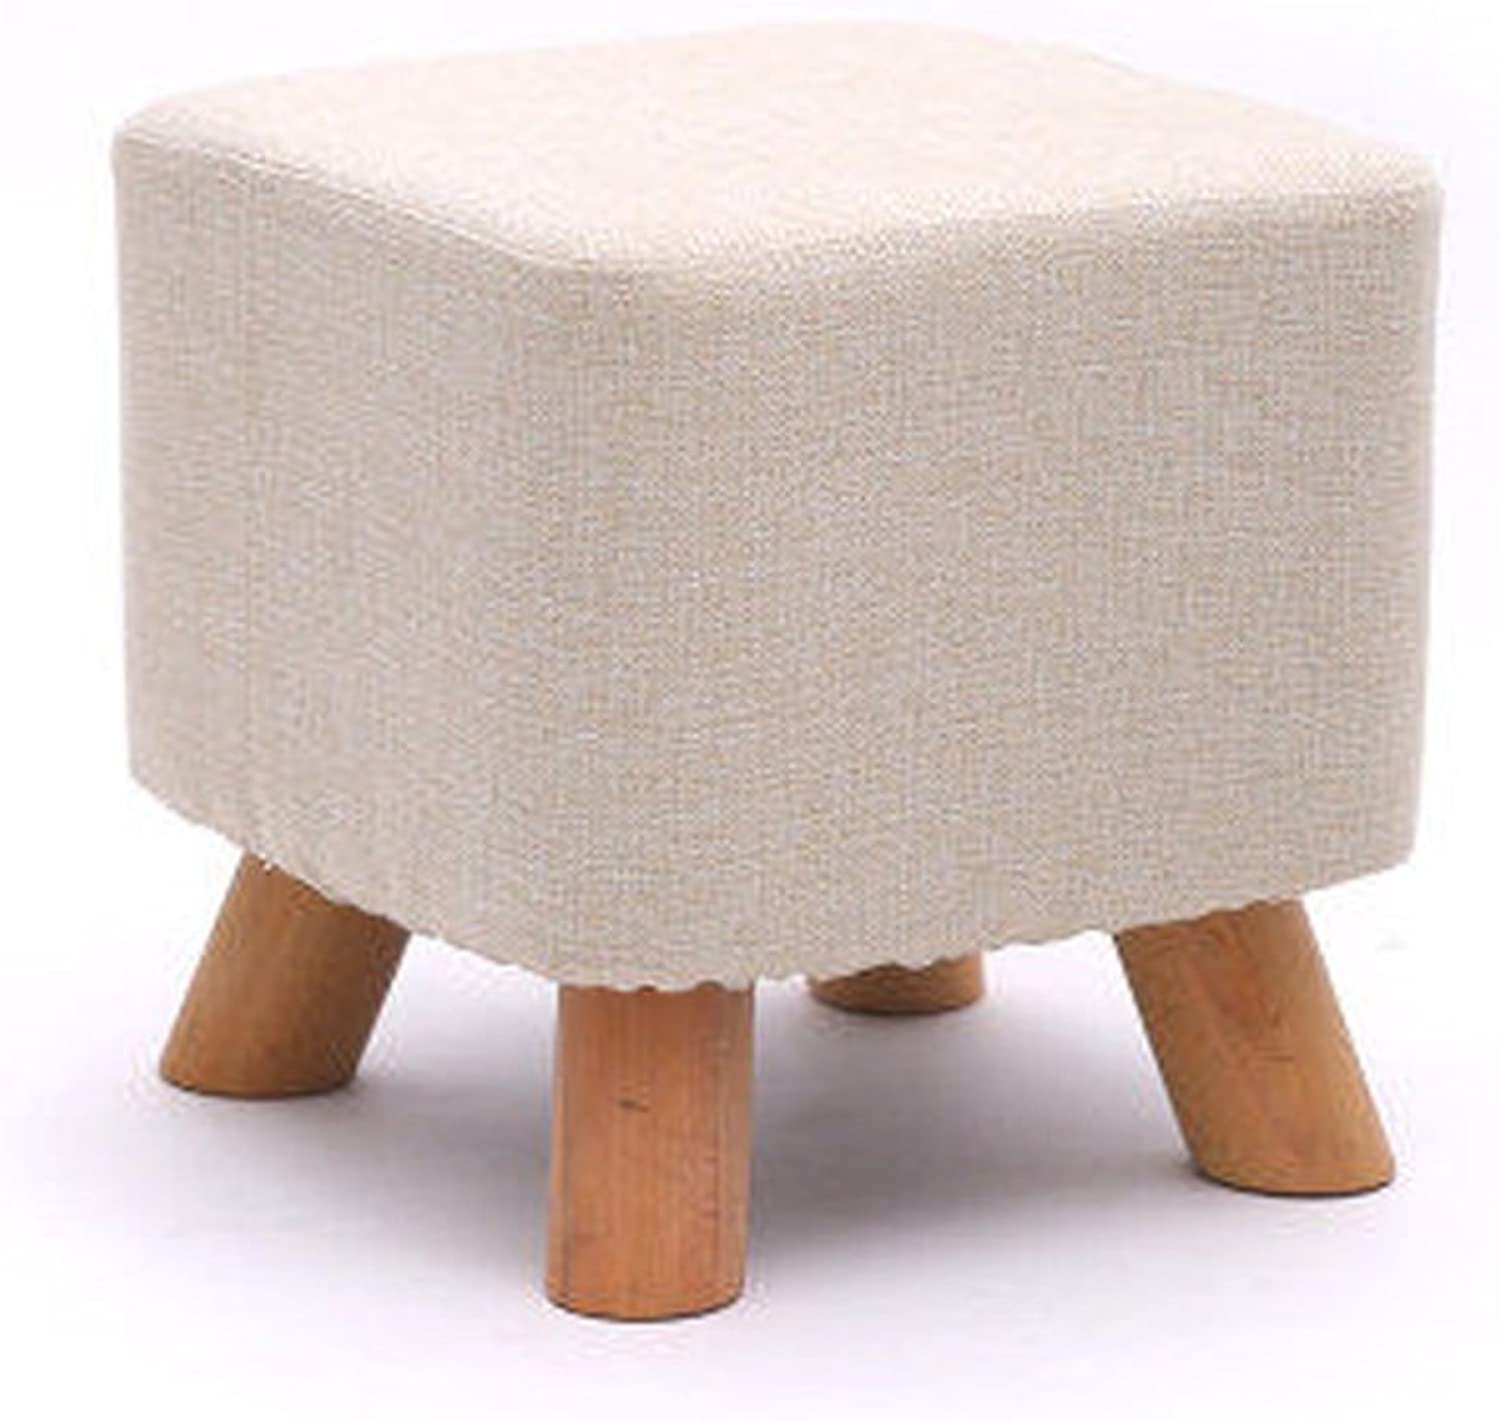 BJLWTQ Solid Wood Change shoes Stool Footstool Round Upholstered 3 4 Wood Legs Pouffes Stool Fabric Cover Removable (color    11)